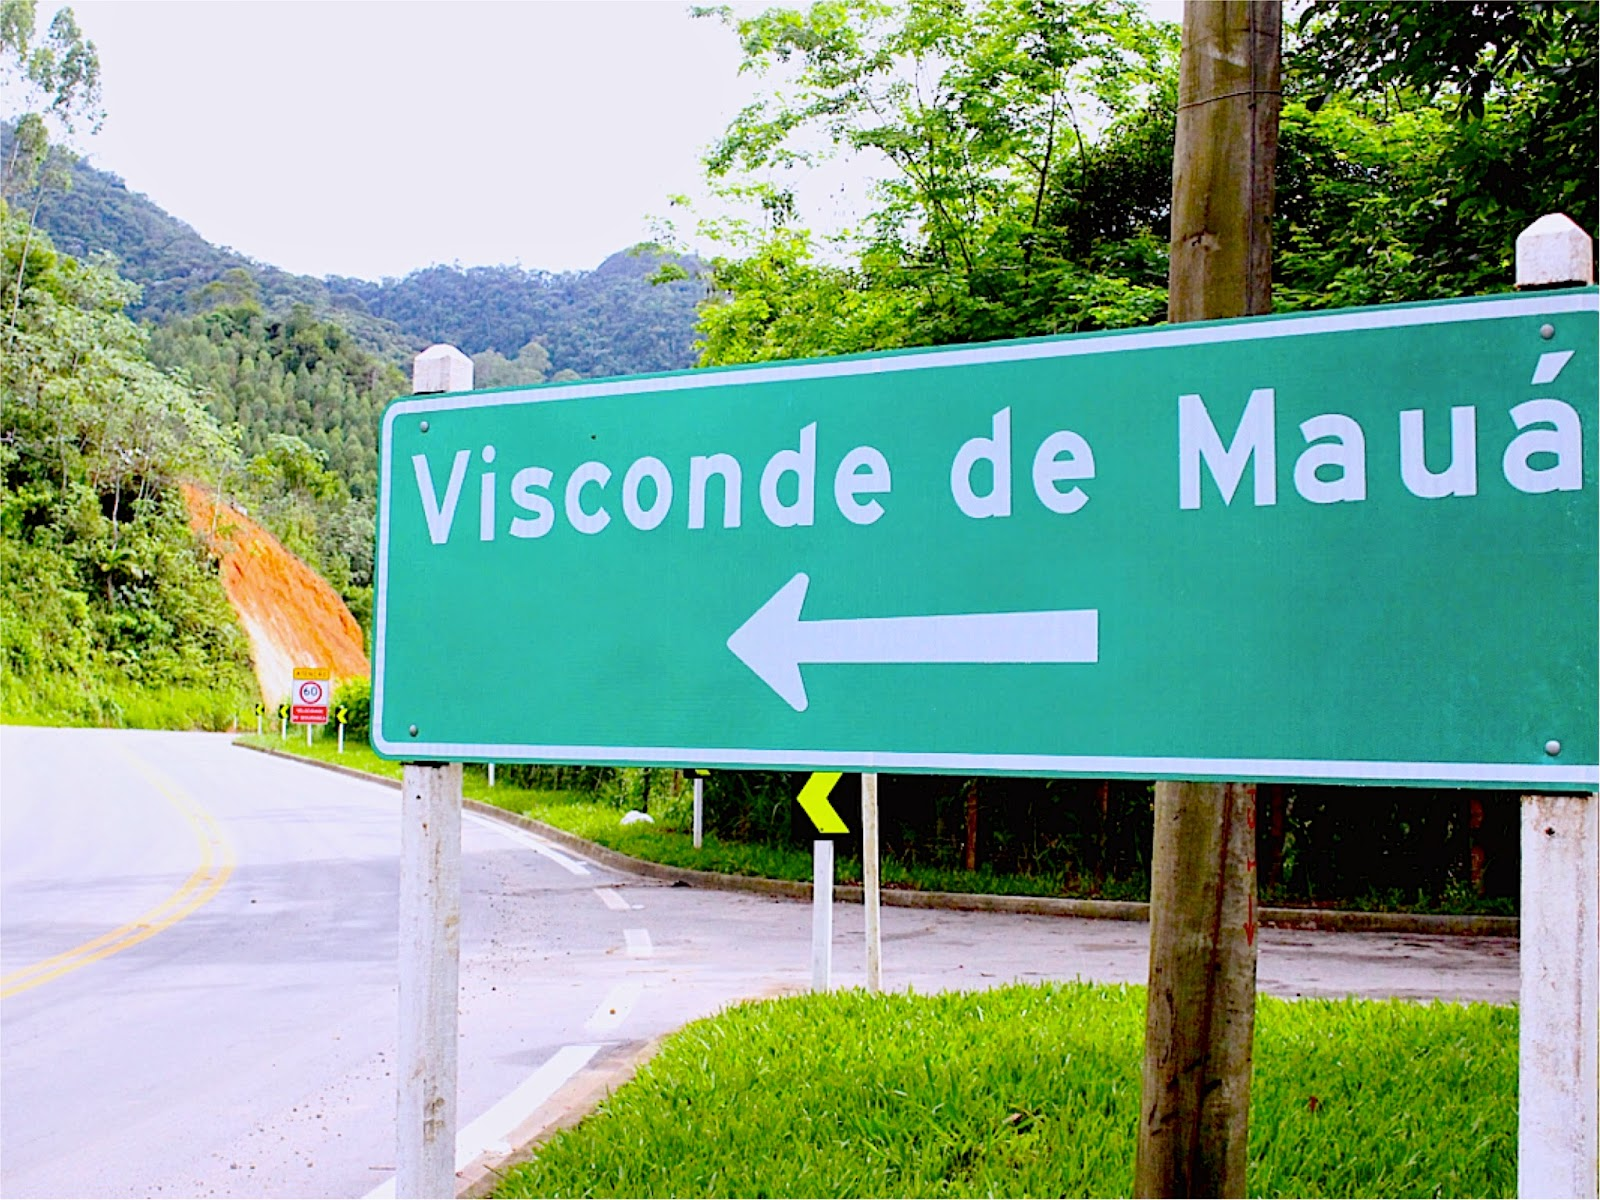 Visconde de Mauá